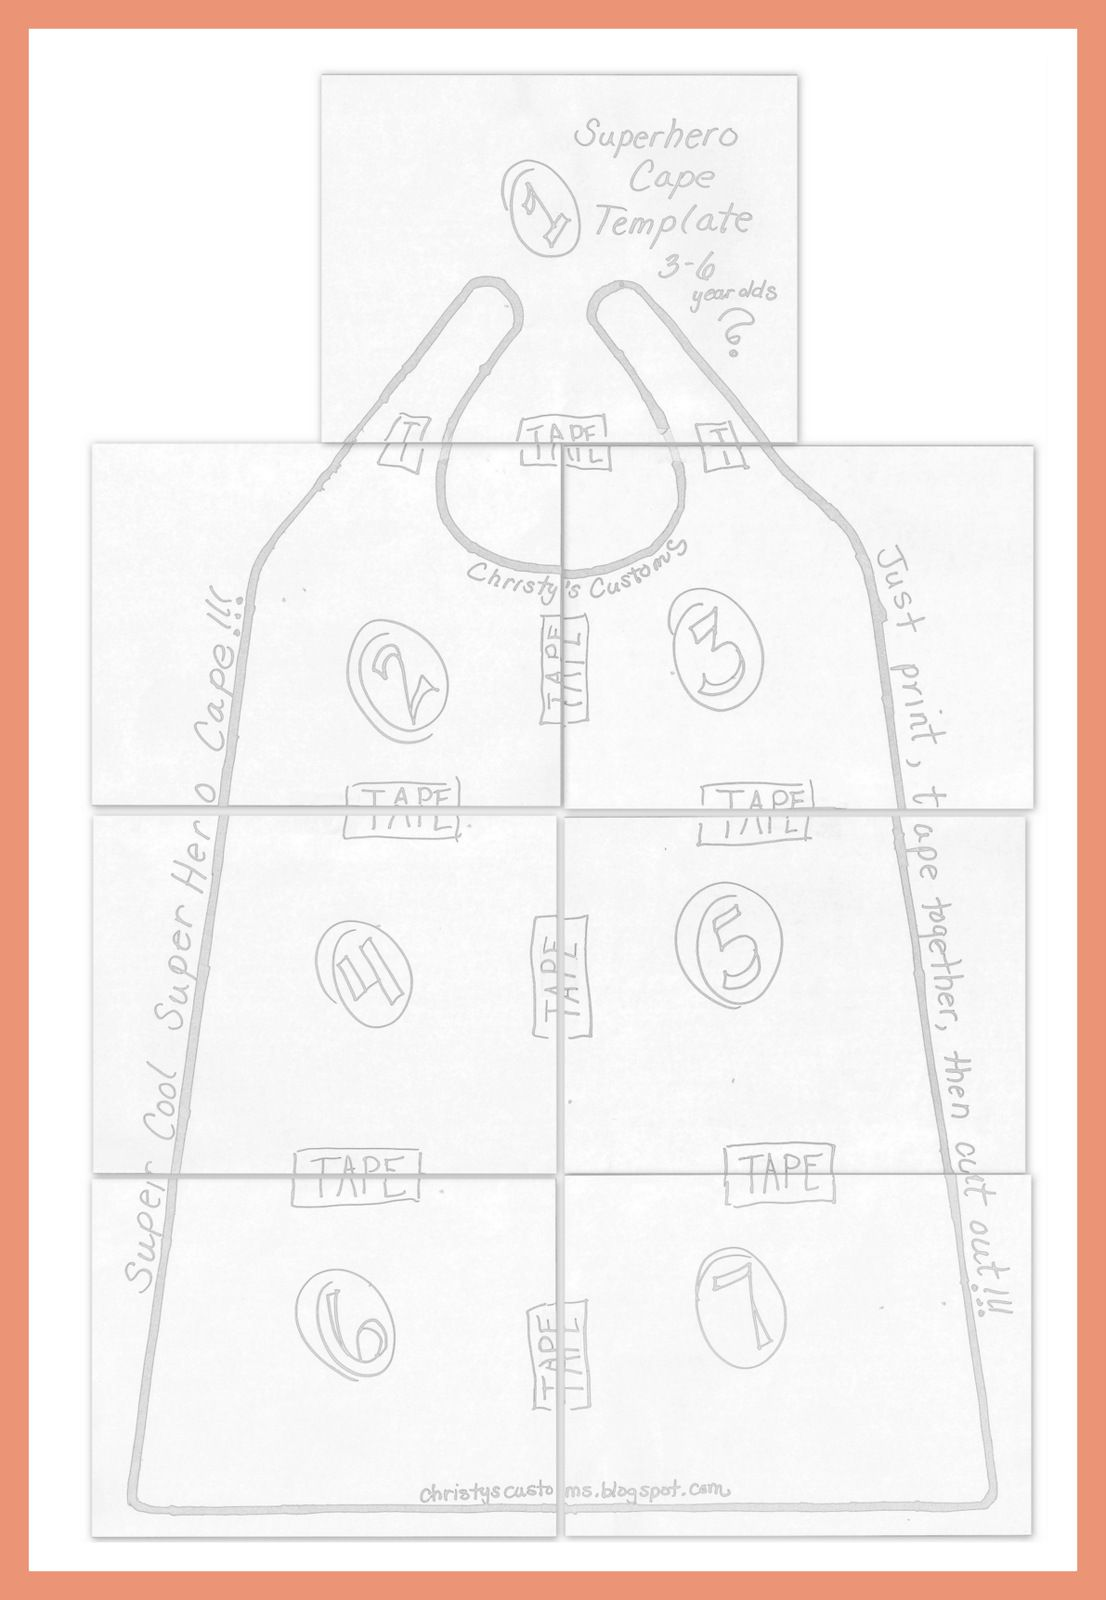 Pattern for childs cape diy superhero capes printable pattern for childs cape diy superhero capes printable templates included pronofoot35fo Image collections